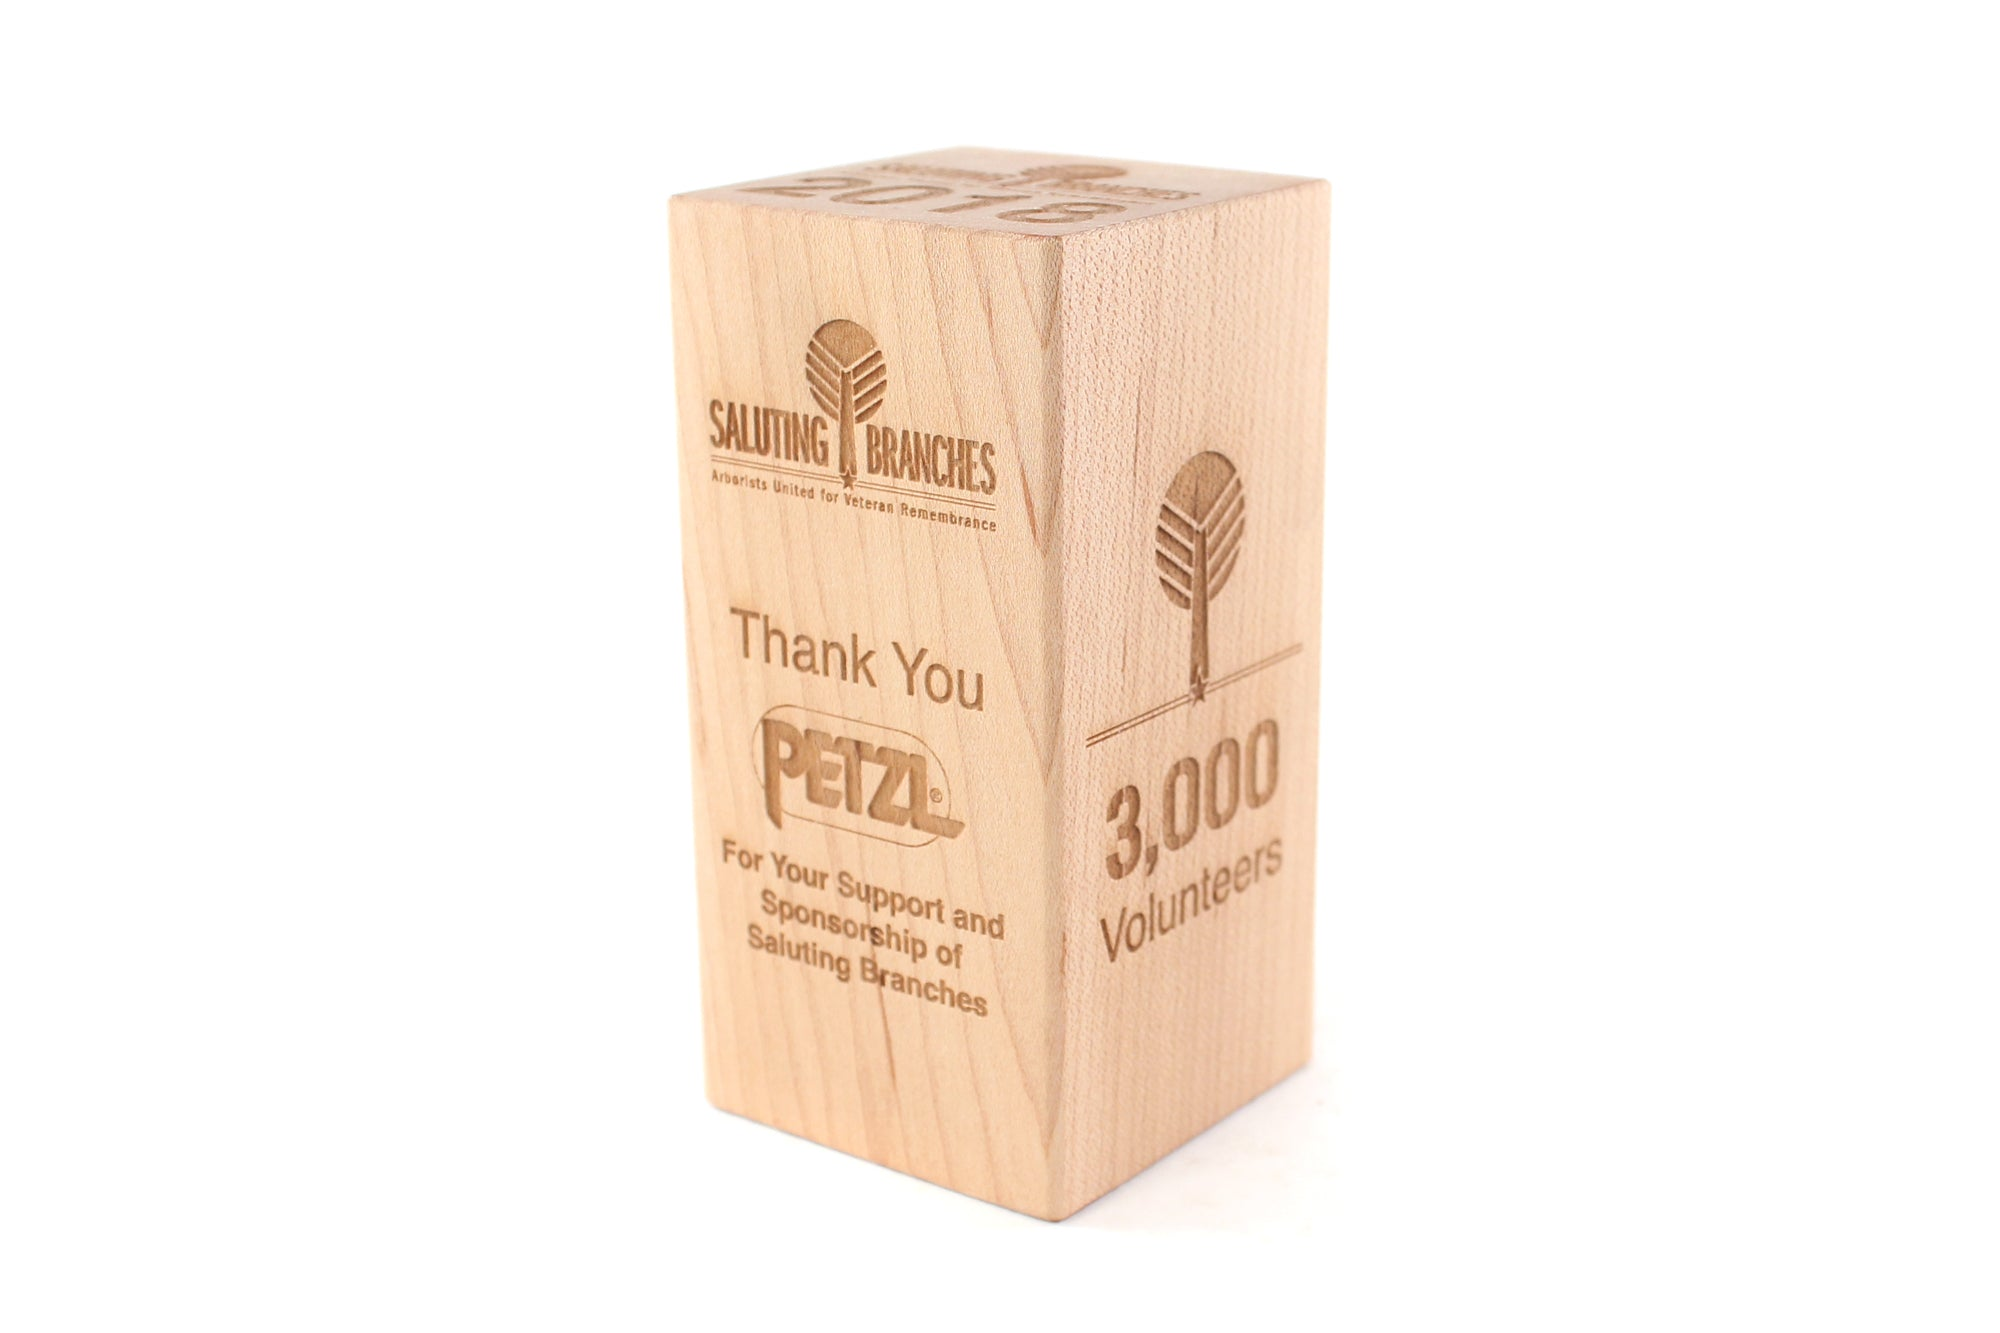 custom engraved wooden block for award sponsor thank you gift Smiling Tree Corporate Gifts engraved wood blocks